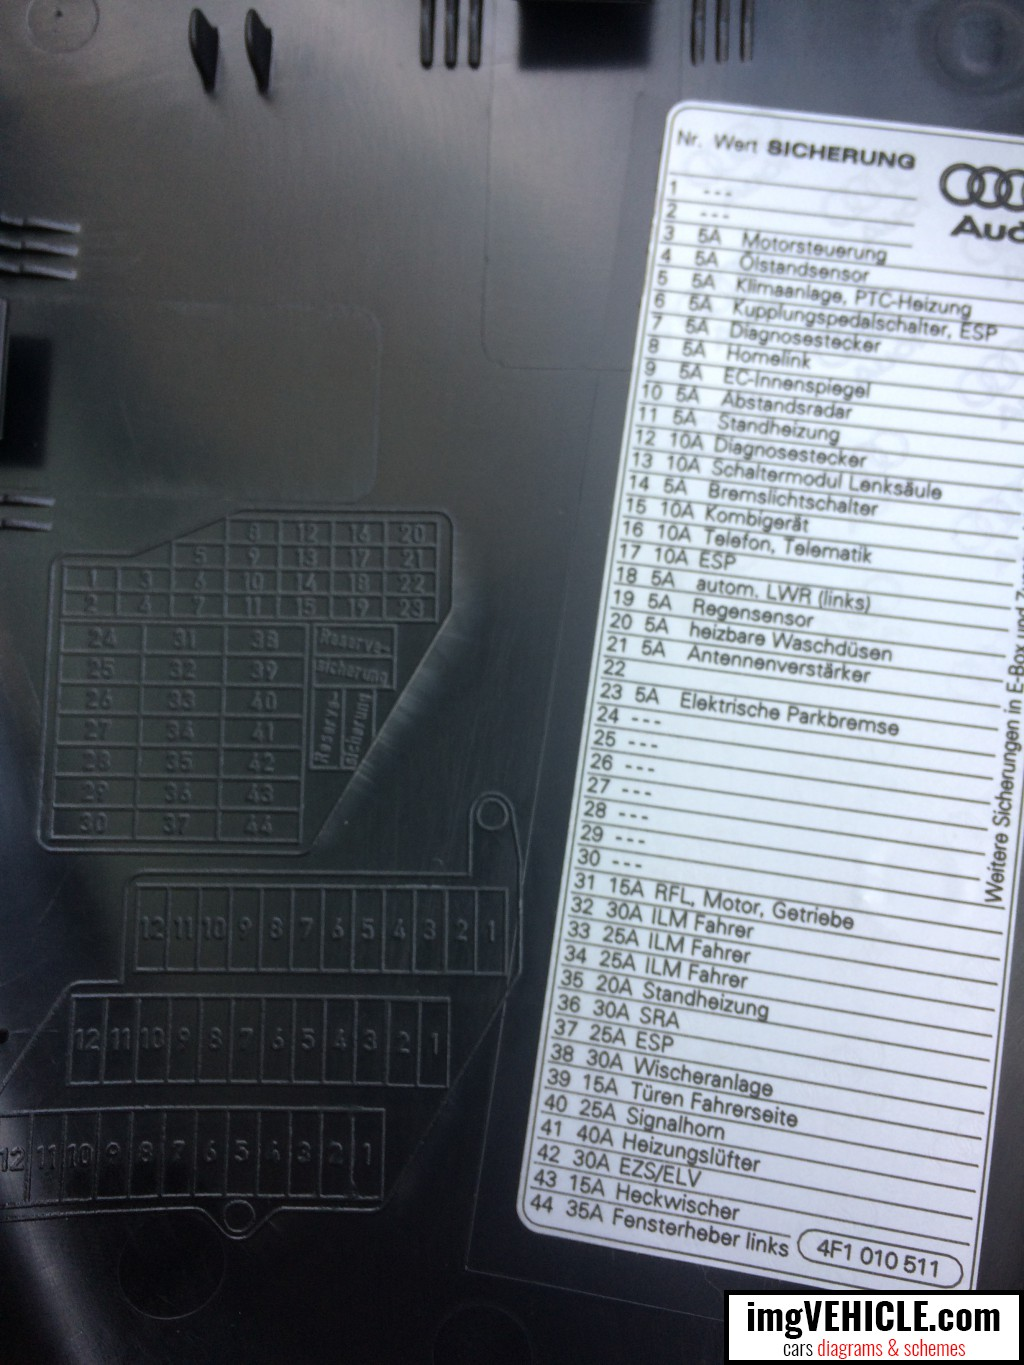 2011 Audi A4 Fuse Box Diagram : Audi fuse box diagram wiring for free